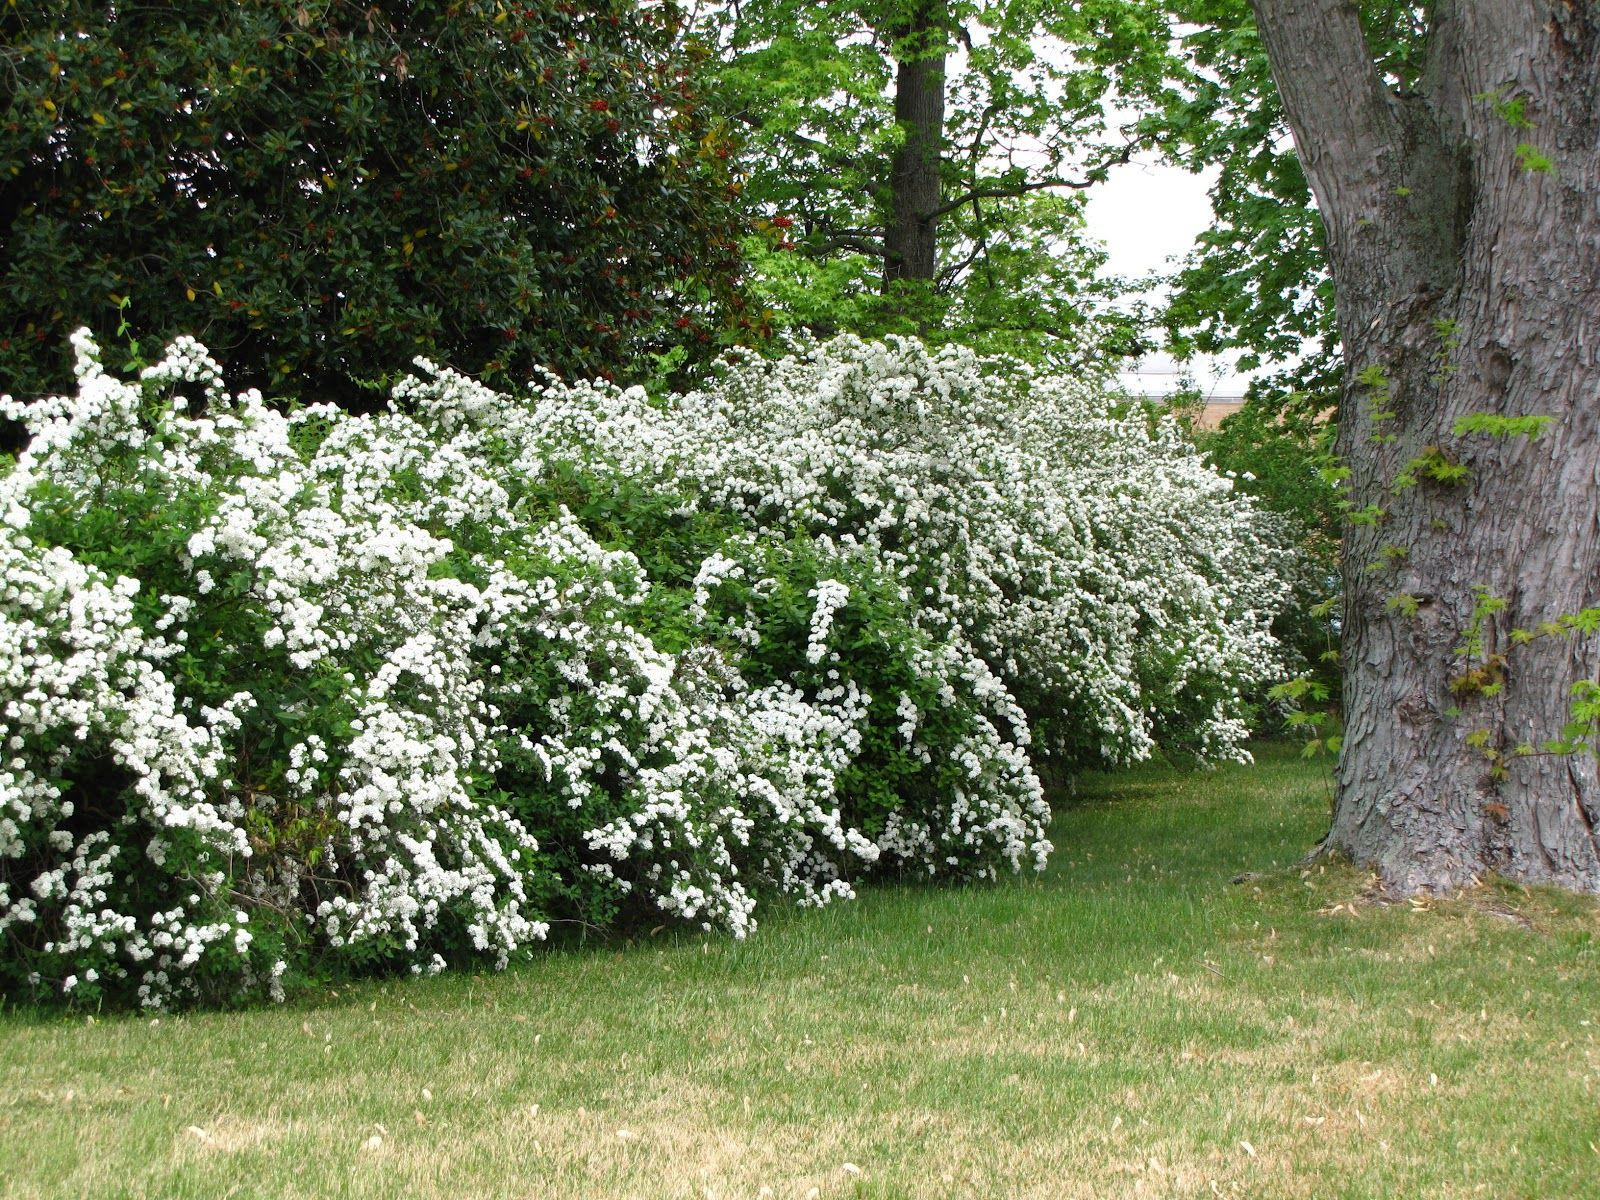 Spirea Hedge Jpg 1 600 200 Pixels Fast Growing Flowers Evergreens